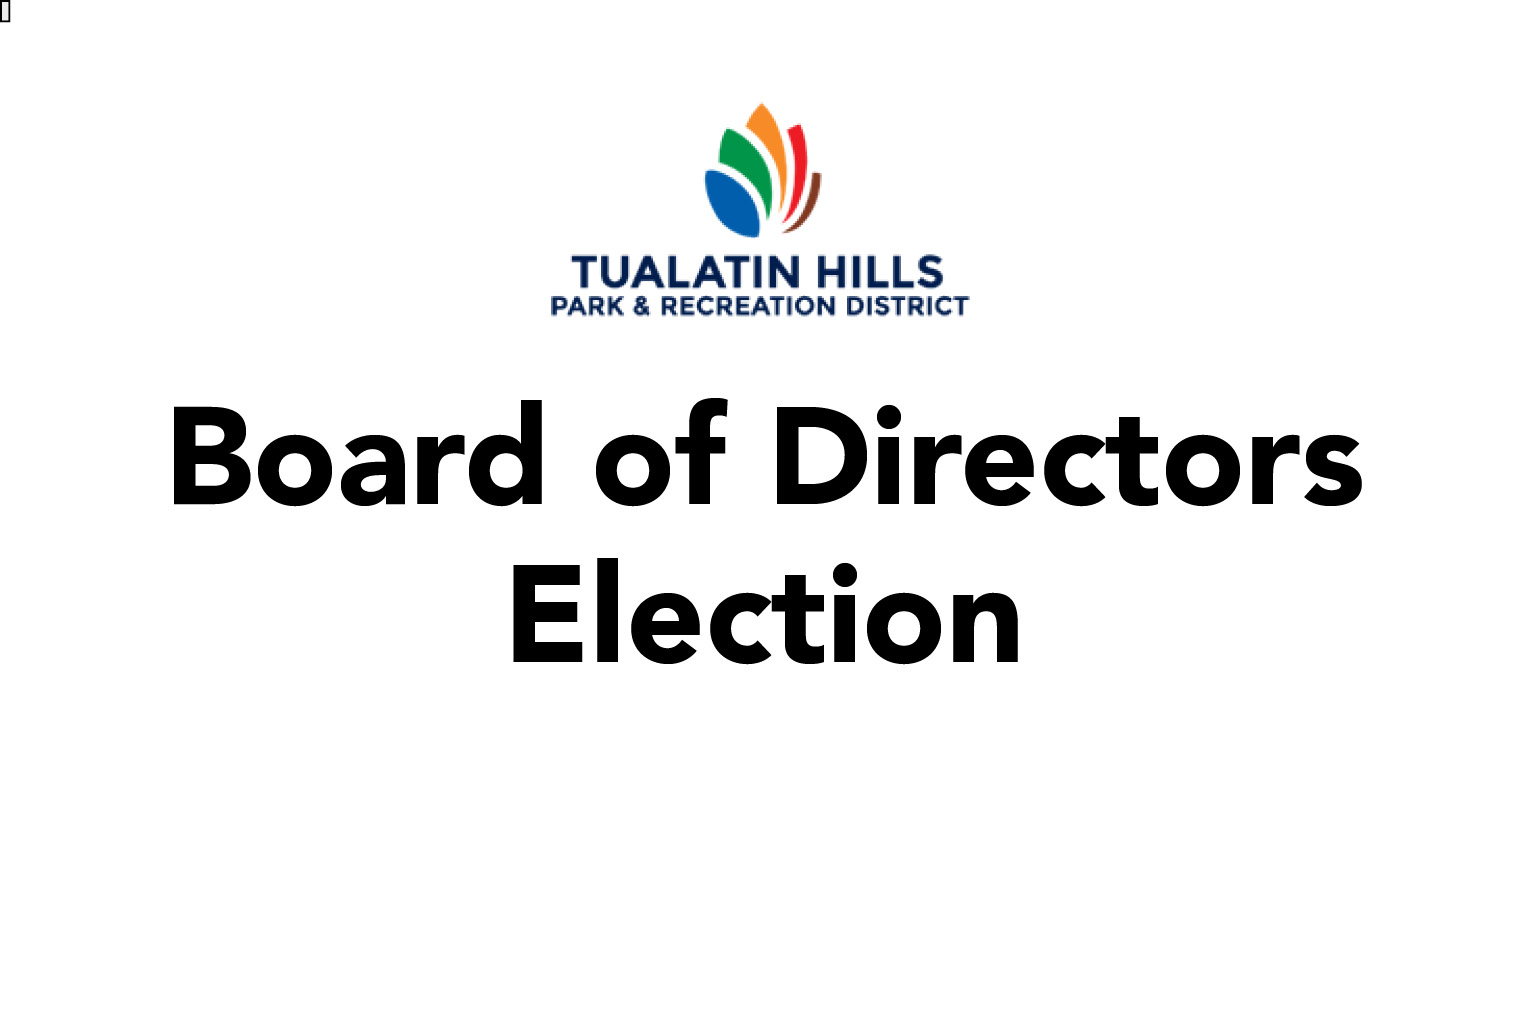 Upcoming Election - Board of Directors